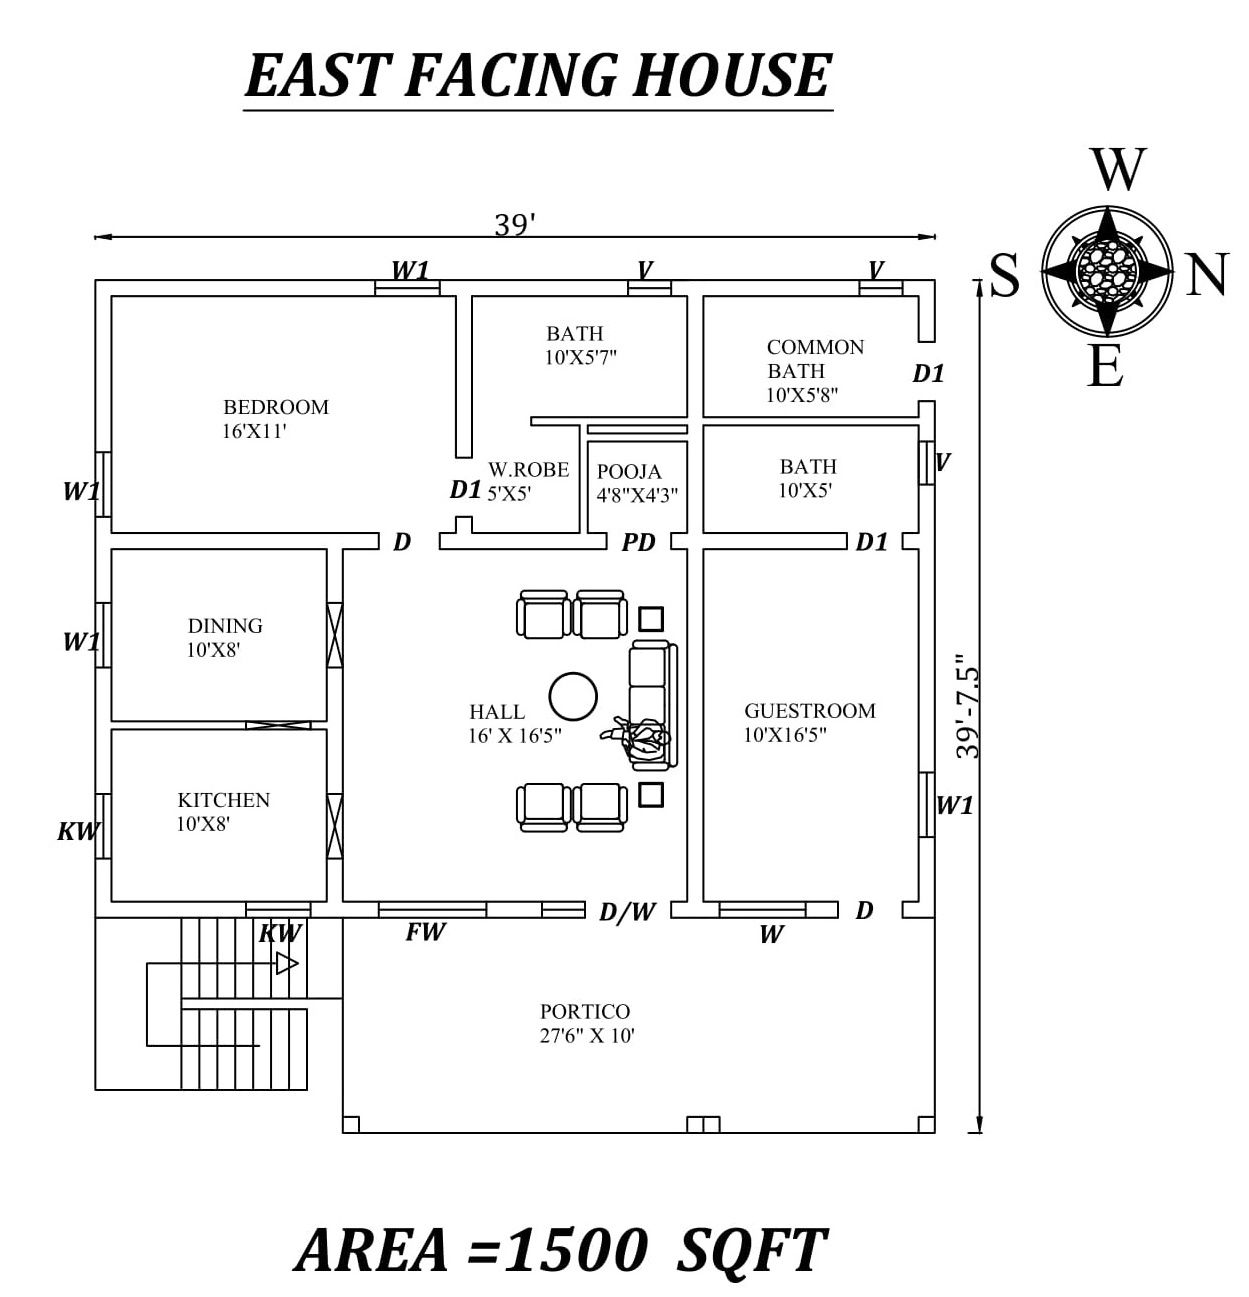 39 X39 Amazing 2bhk East Facing House Plan As Per Vastu Shastra Autocad Dwg File Details House Layout Plans Indian House Plans 40x60 House Plans